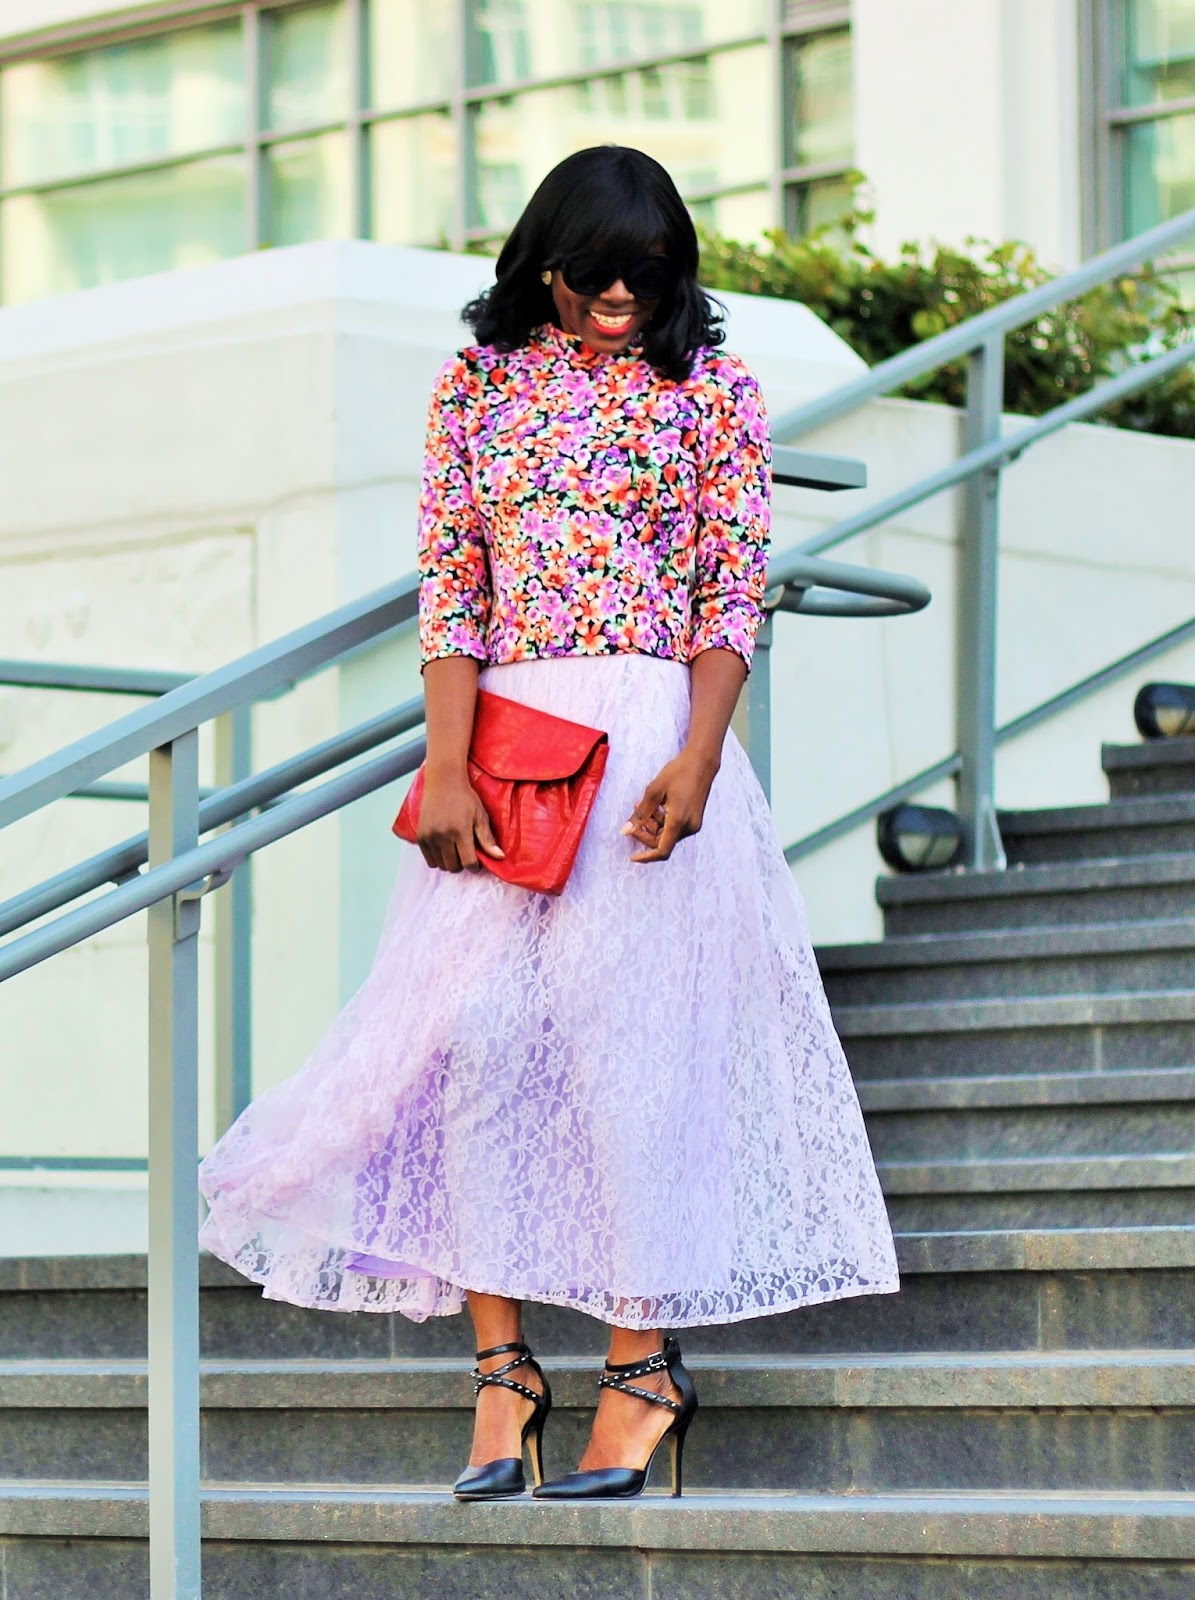 TORONTO FASHION WEEK ROOKIE STYLE: Lace midi skirt and  flroral print top